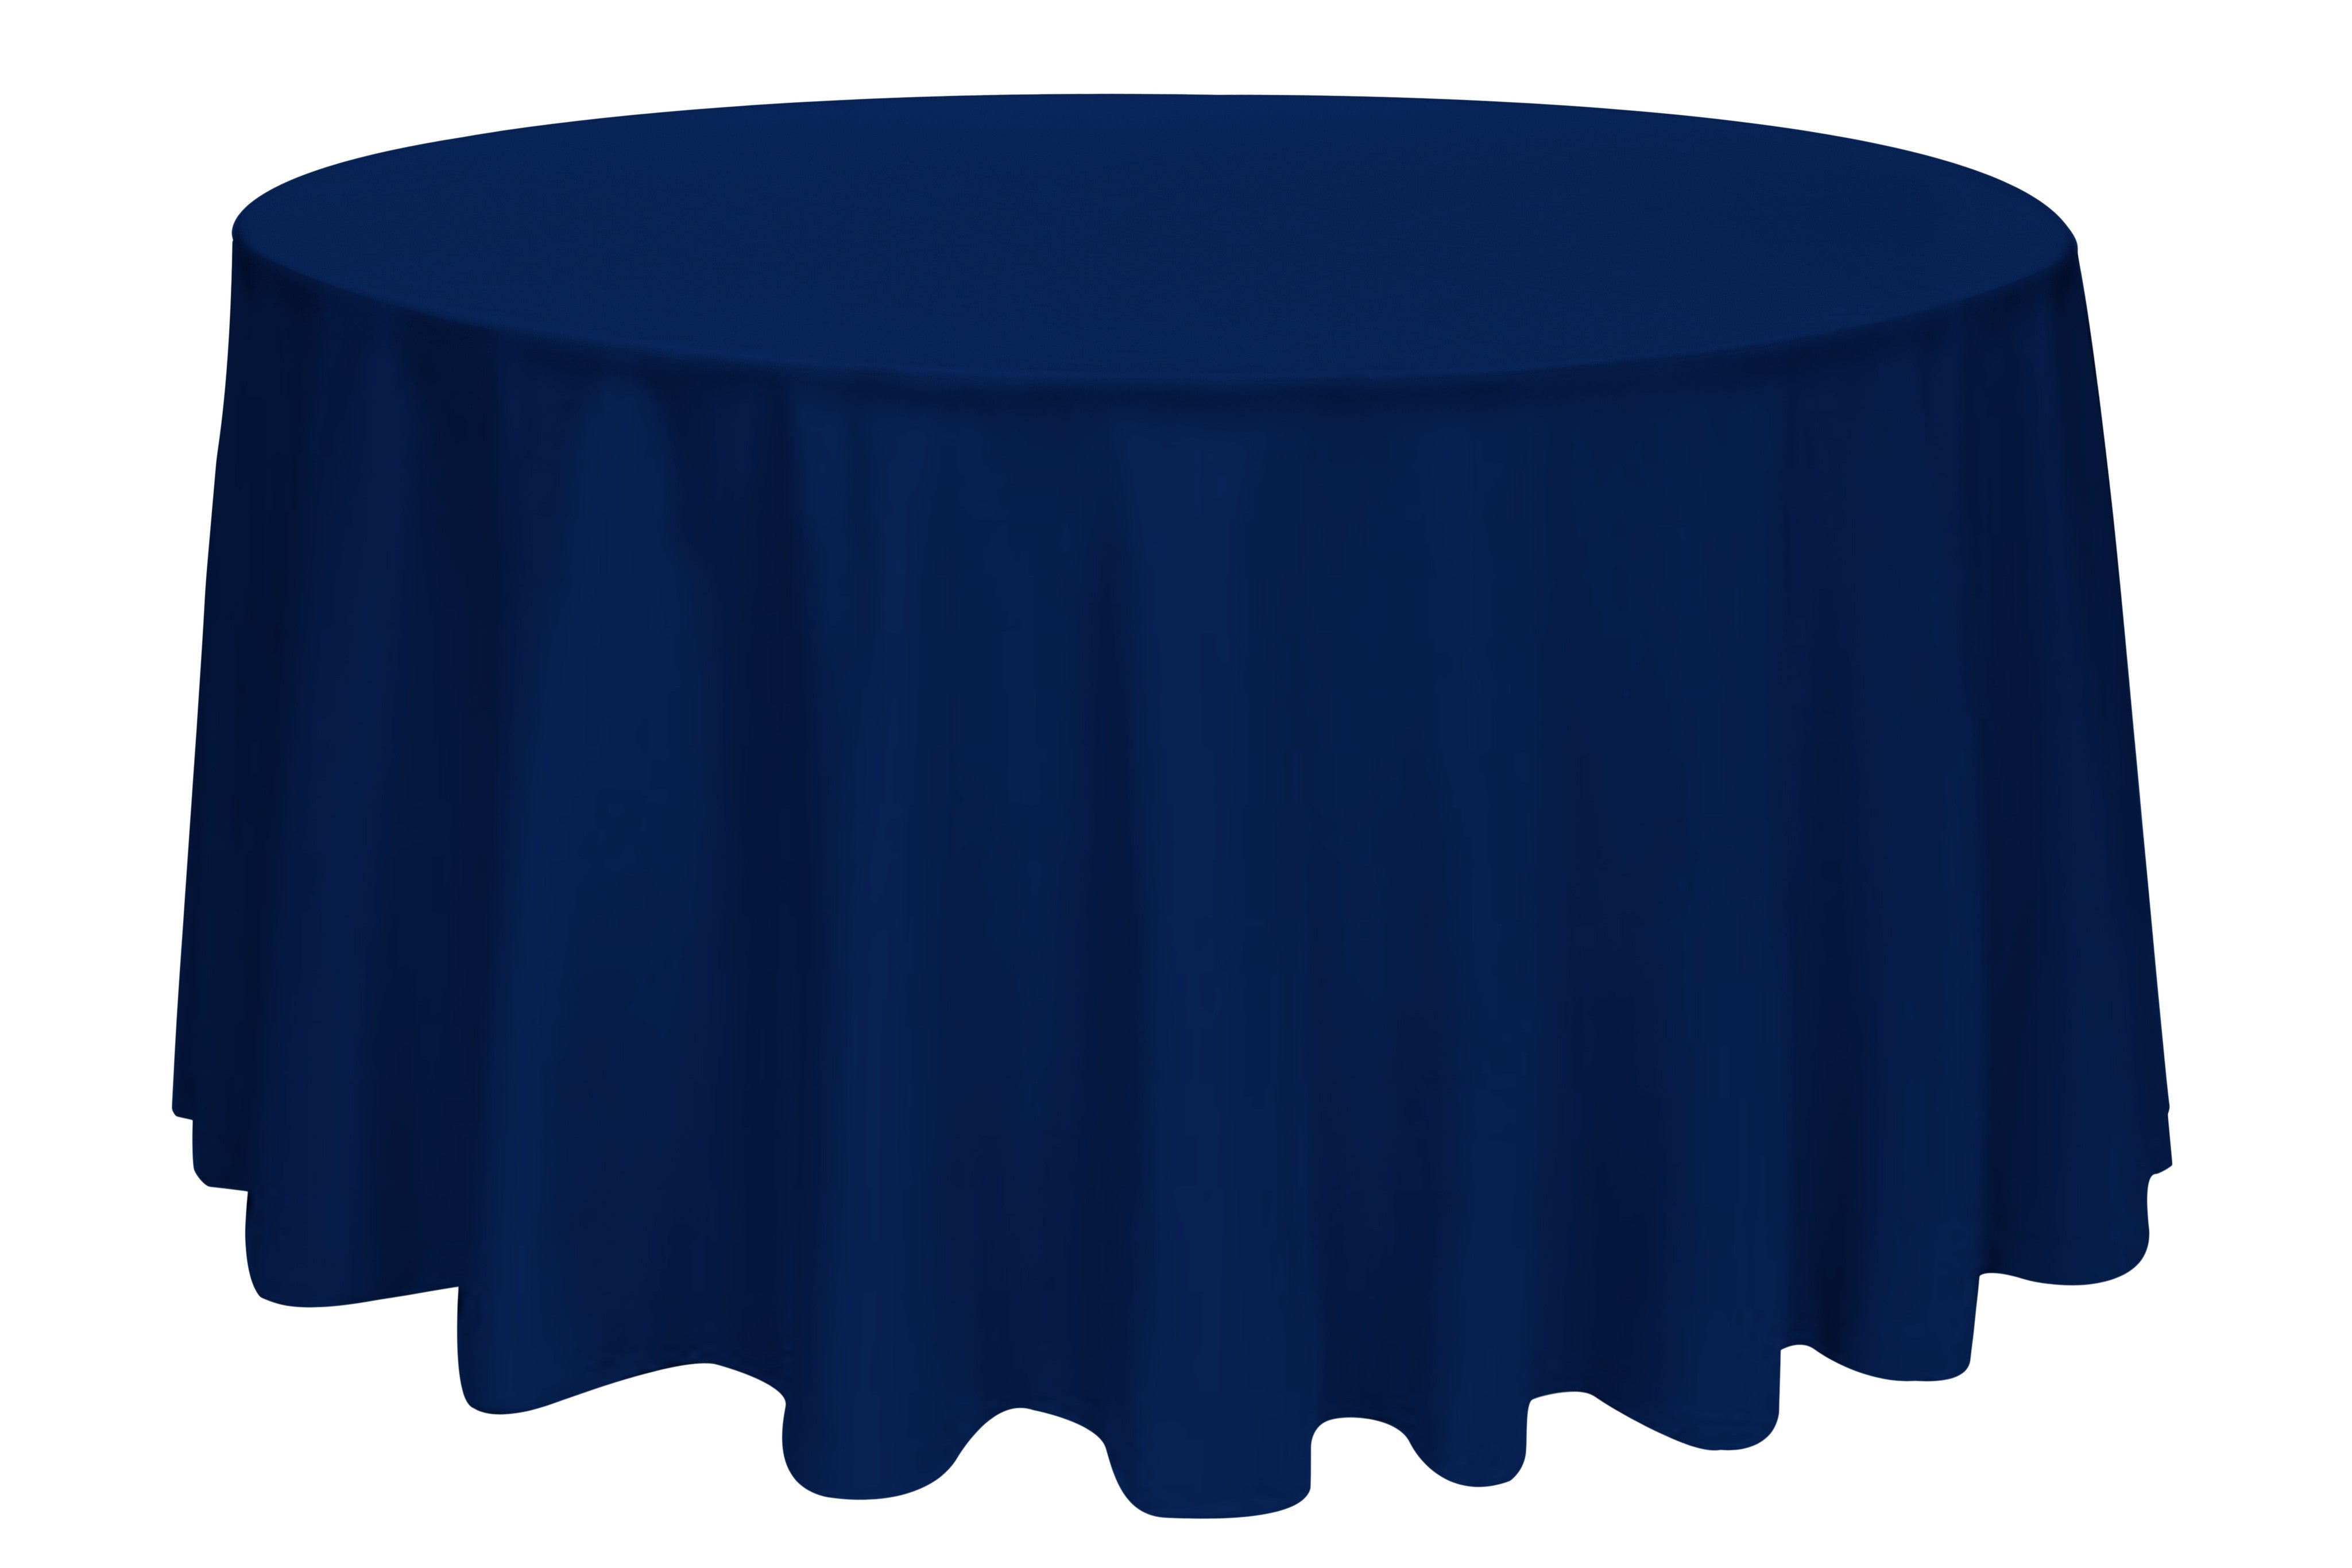 132'' round tablecloth - Valleytablecloth